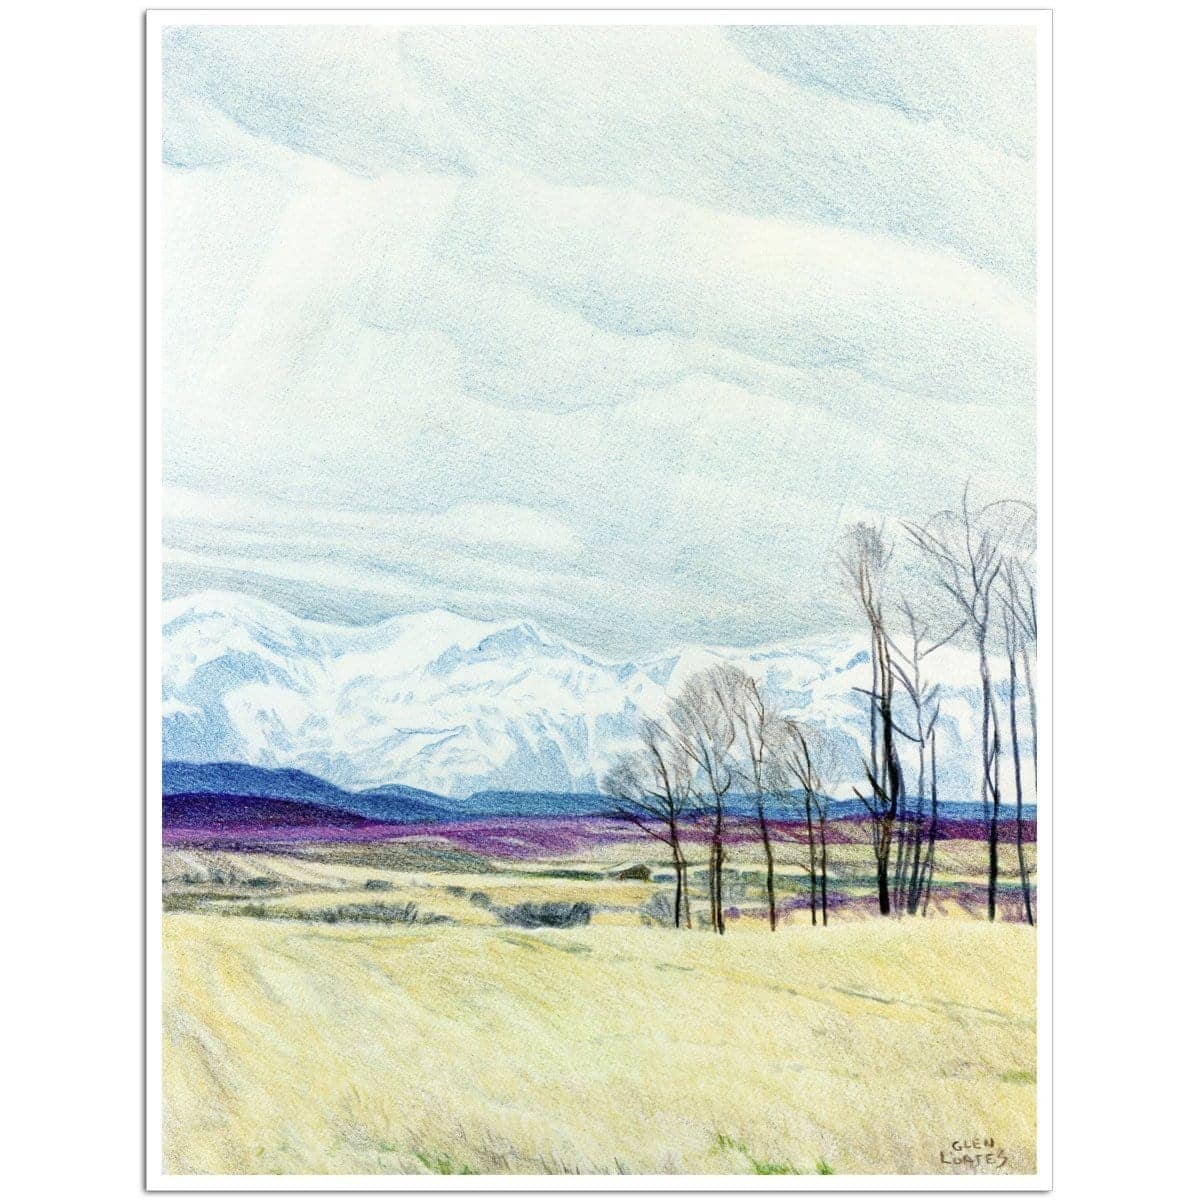 Calgary Foothills - Art Print by Glen Loates from the Glen Loates Store